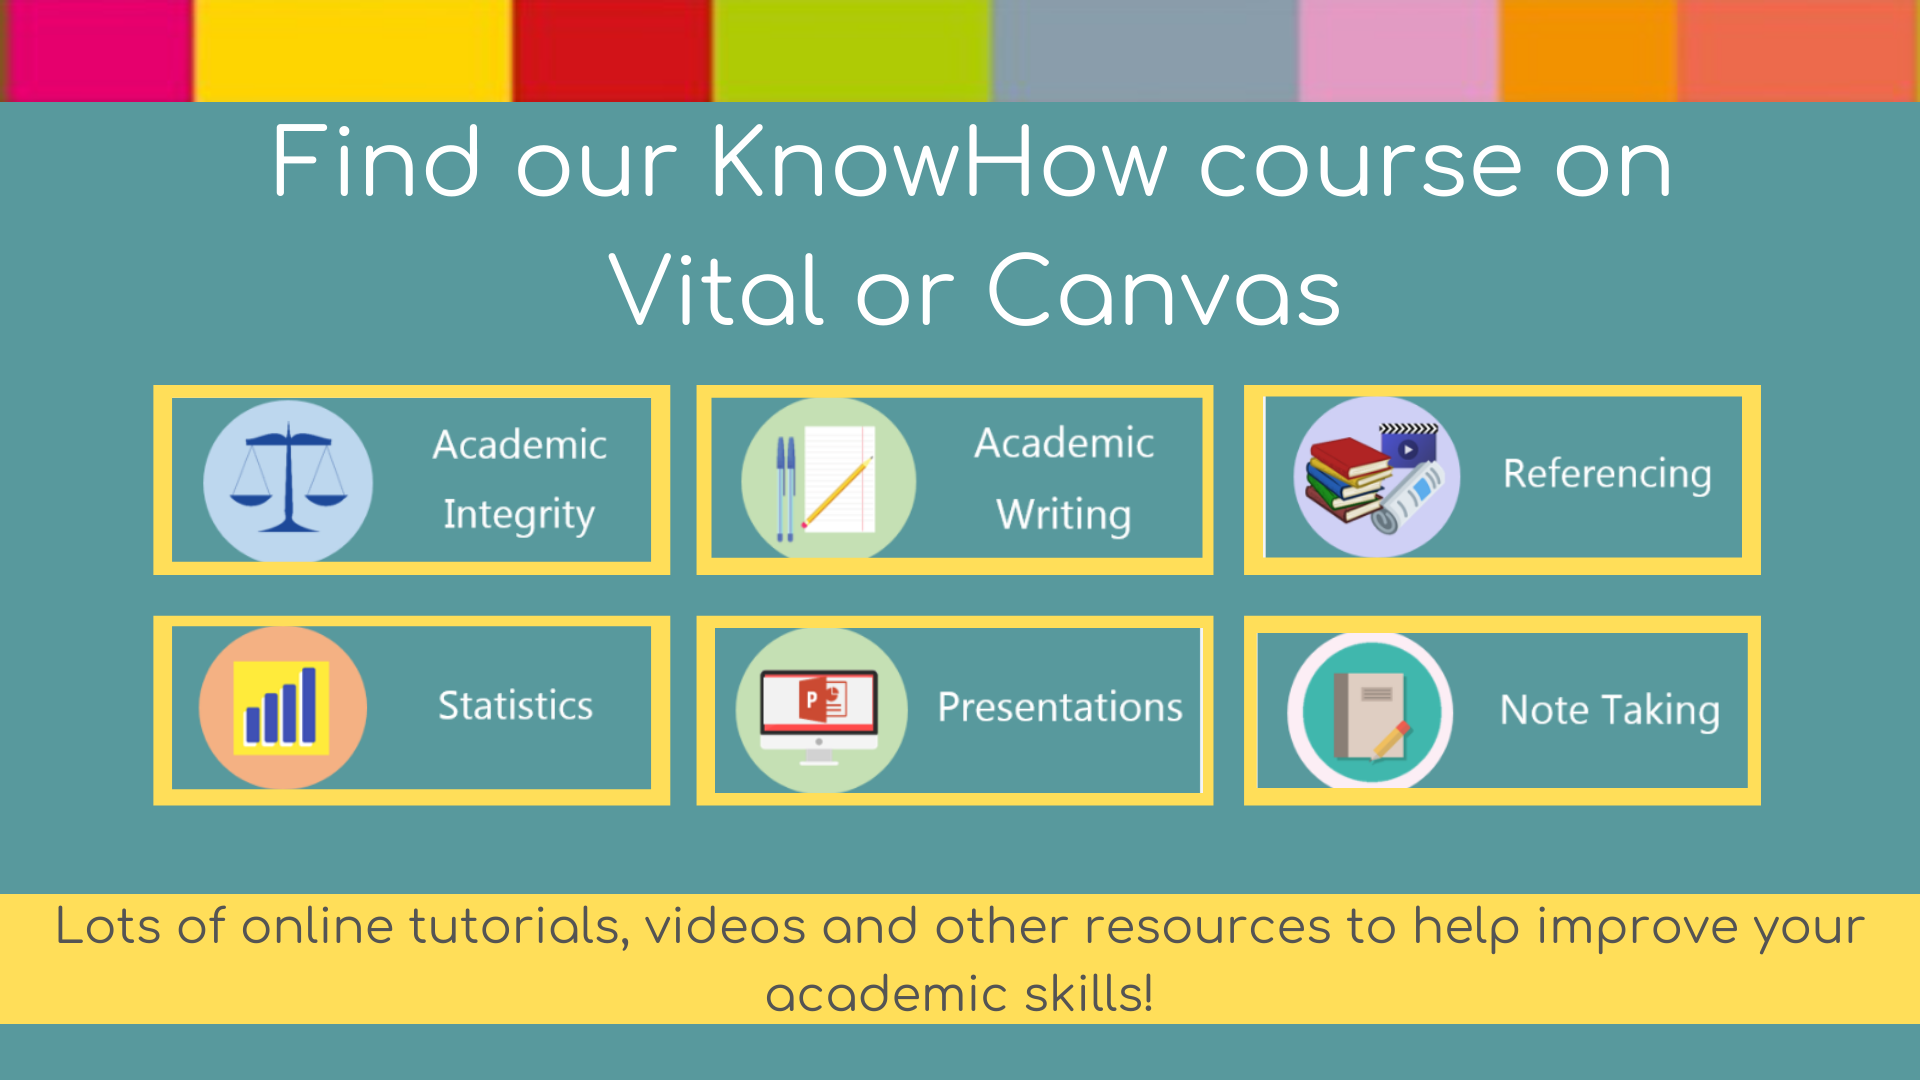 Find our KnowHow course on VITAL/Canvas